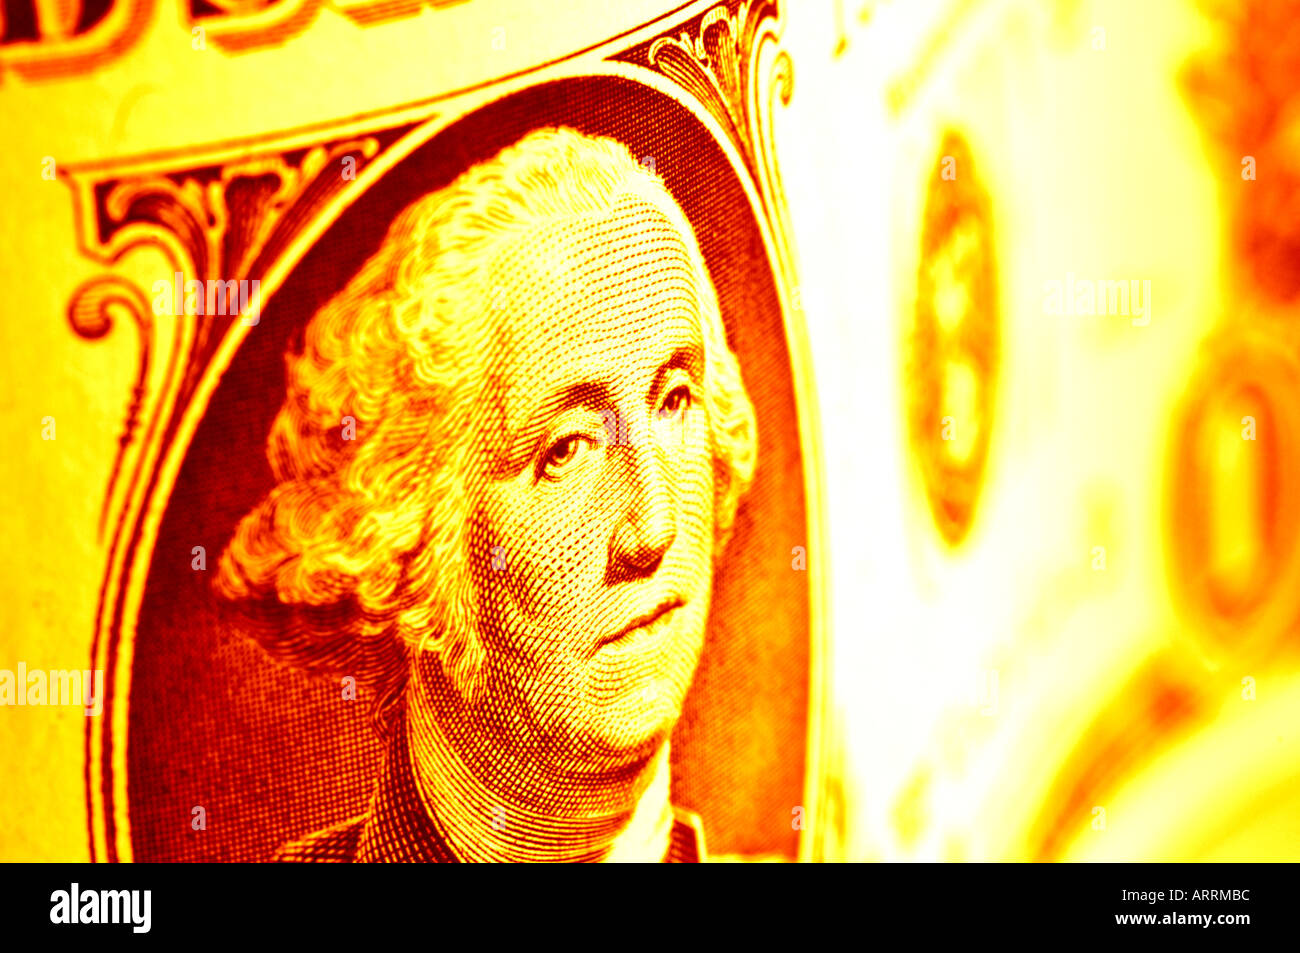 closeup of one dollar bill US sepia toned - Stock Image